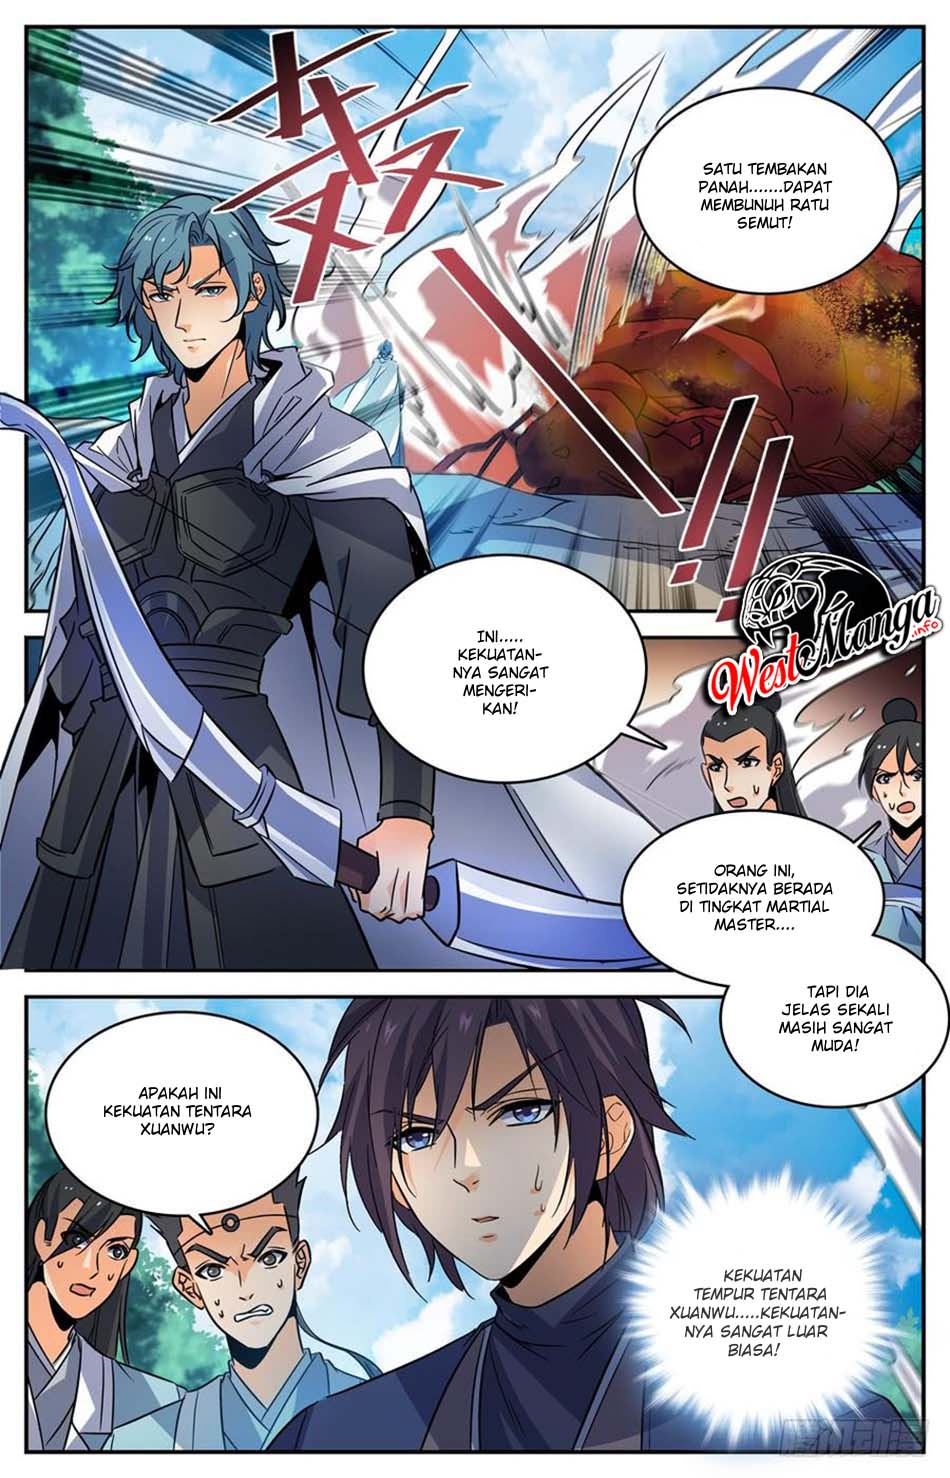 Lian Fei Wei Bao Chapter 75